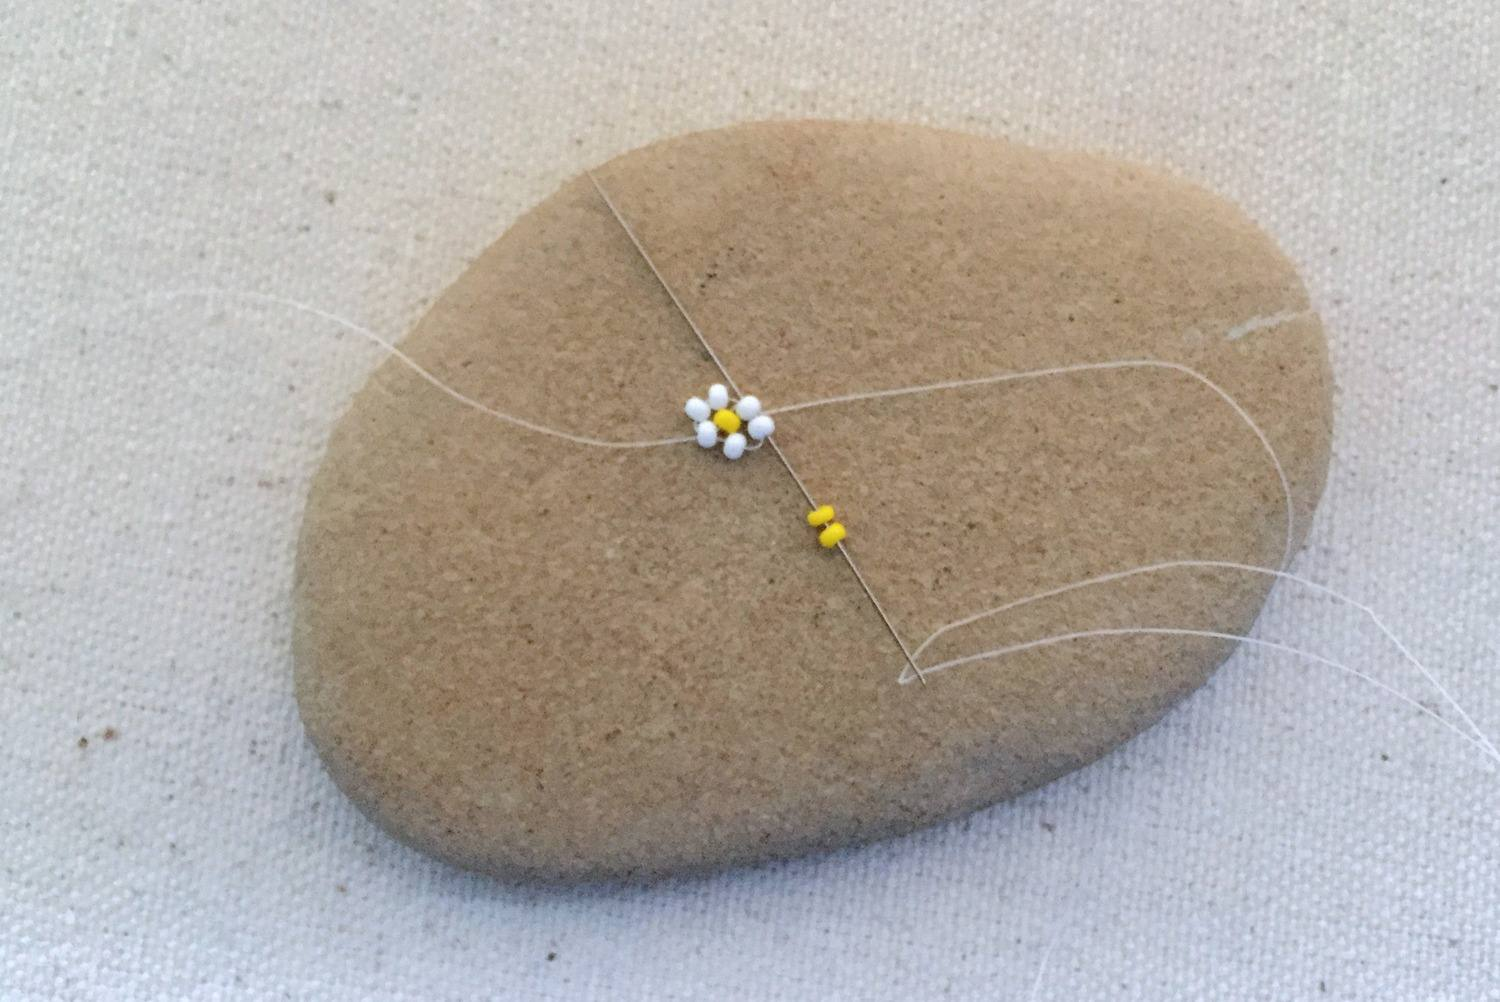 Making the second flower on a beaded daisy chain